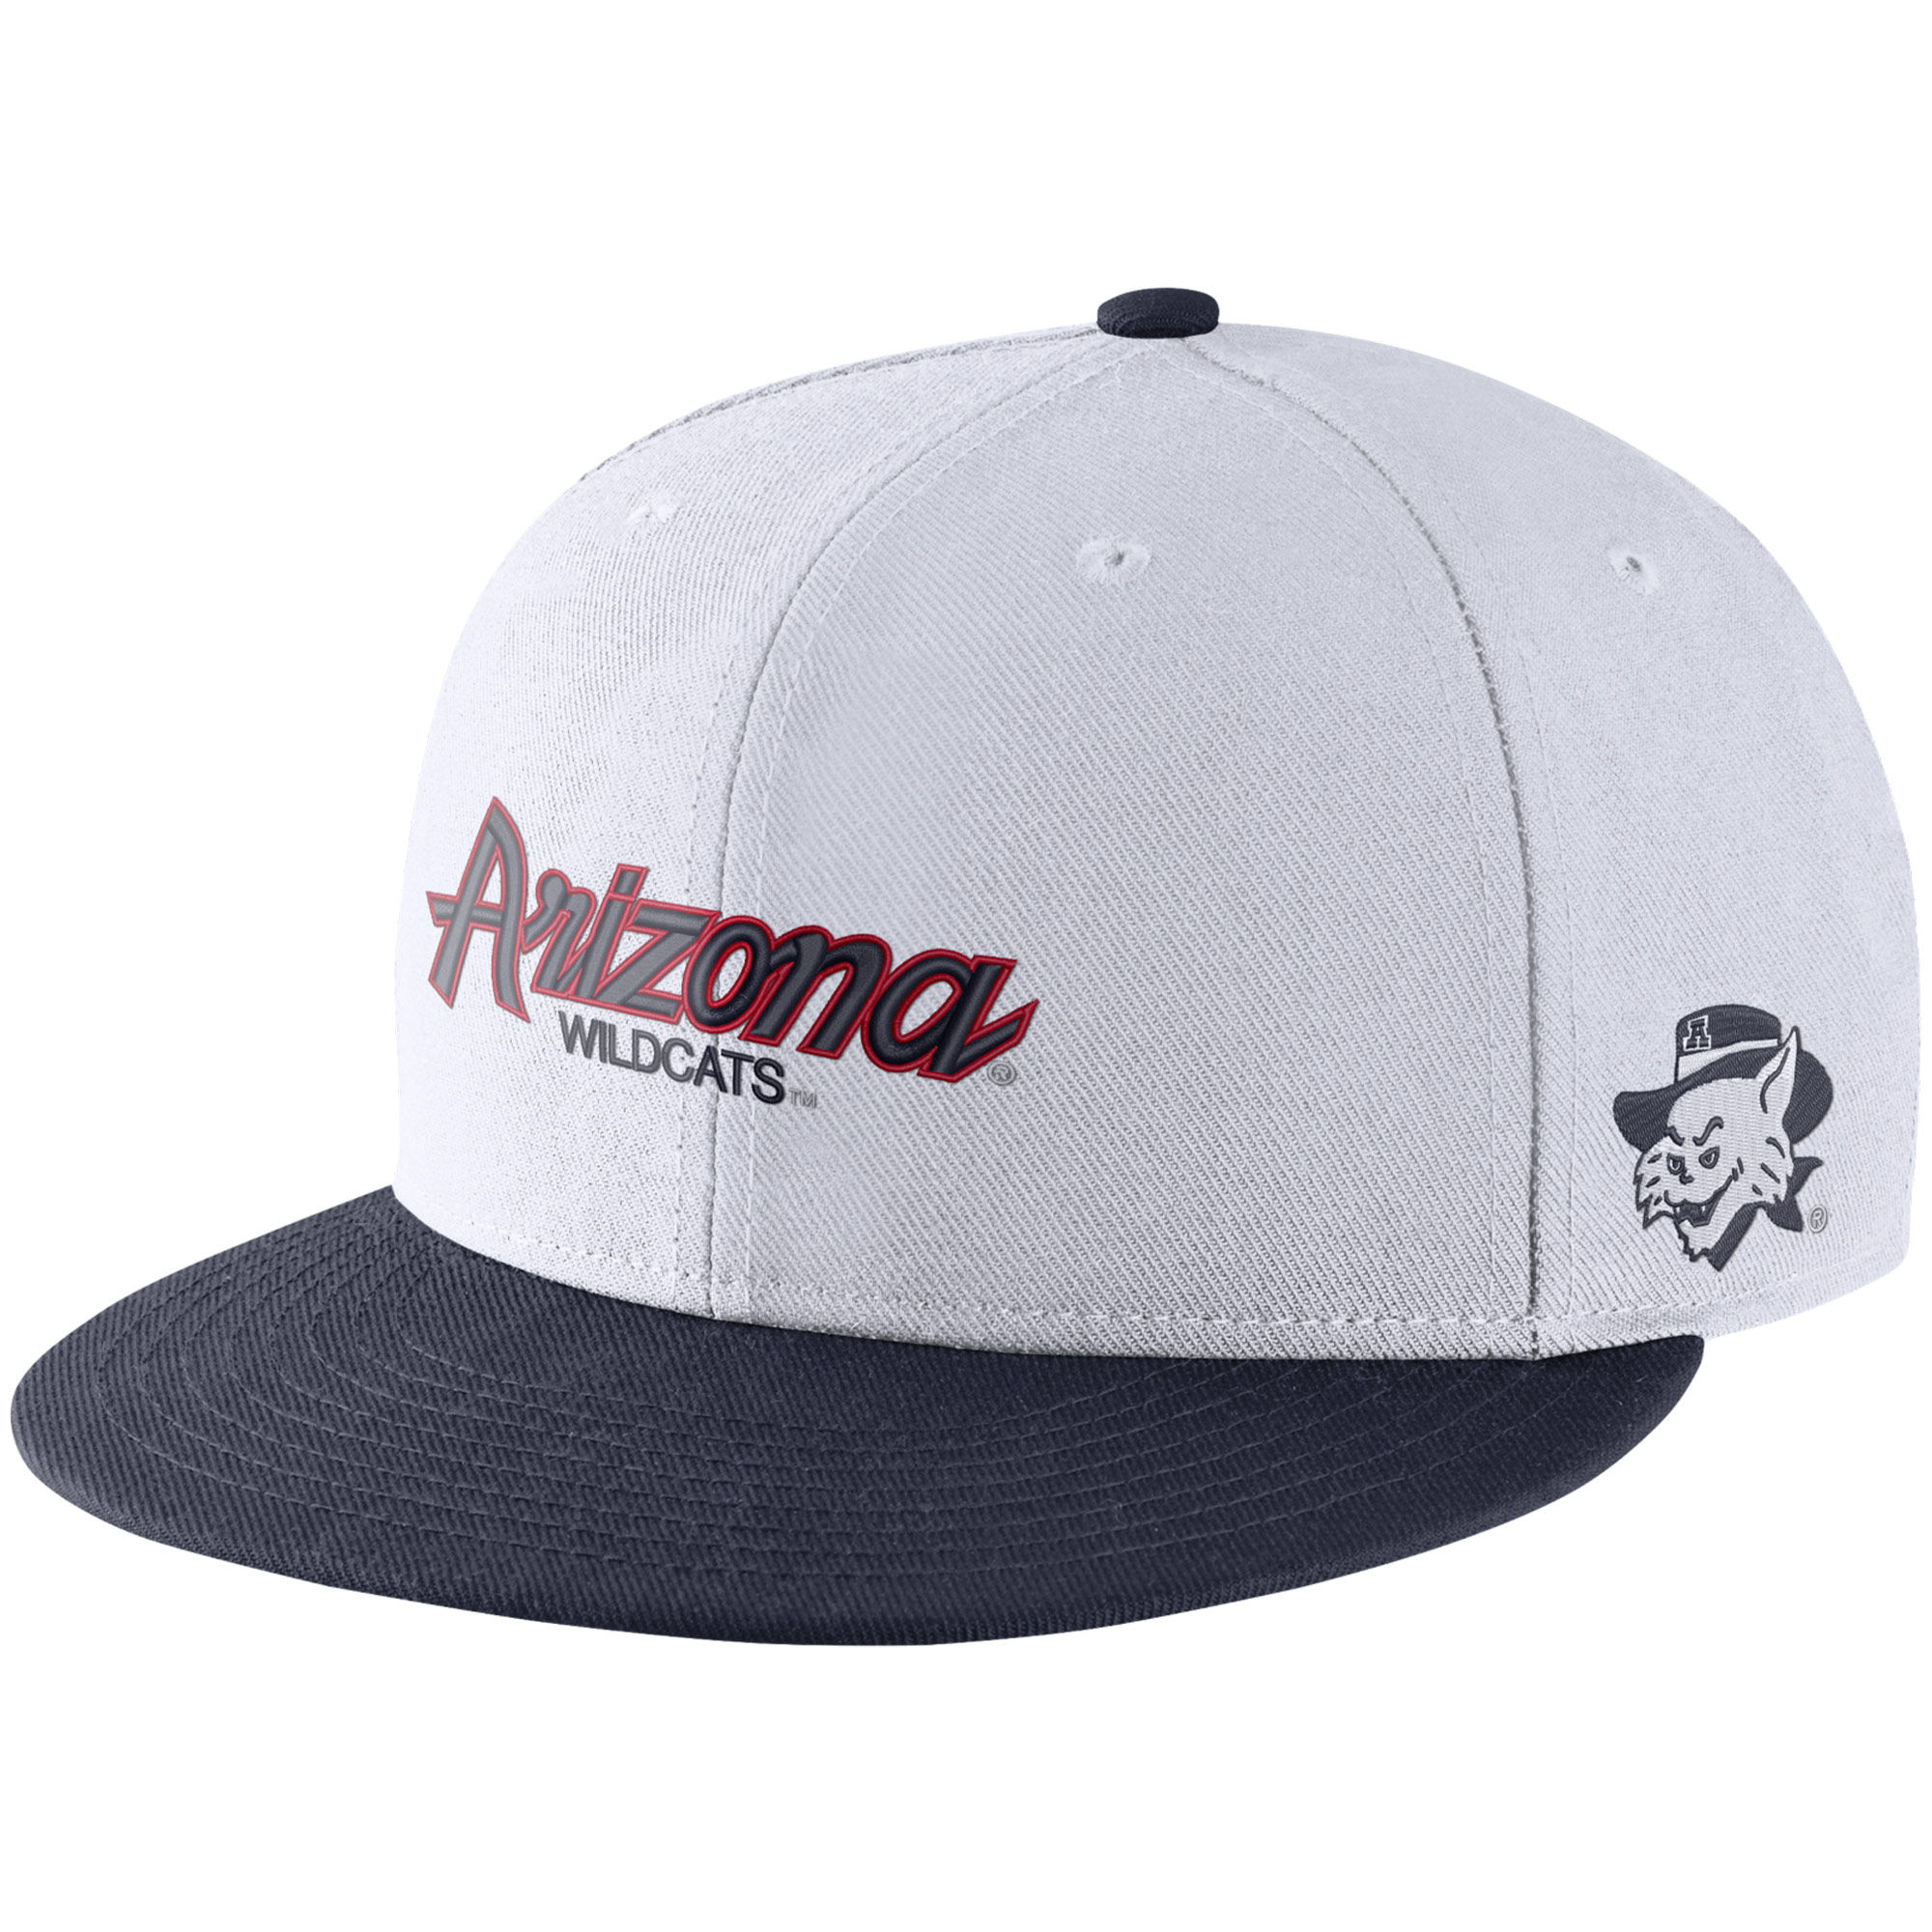 Image For Nike: Arizona Wildcats True Sports Specialties Cap - White